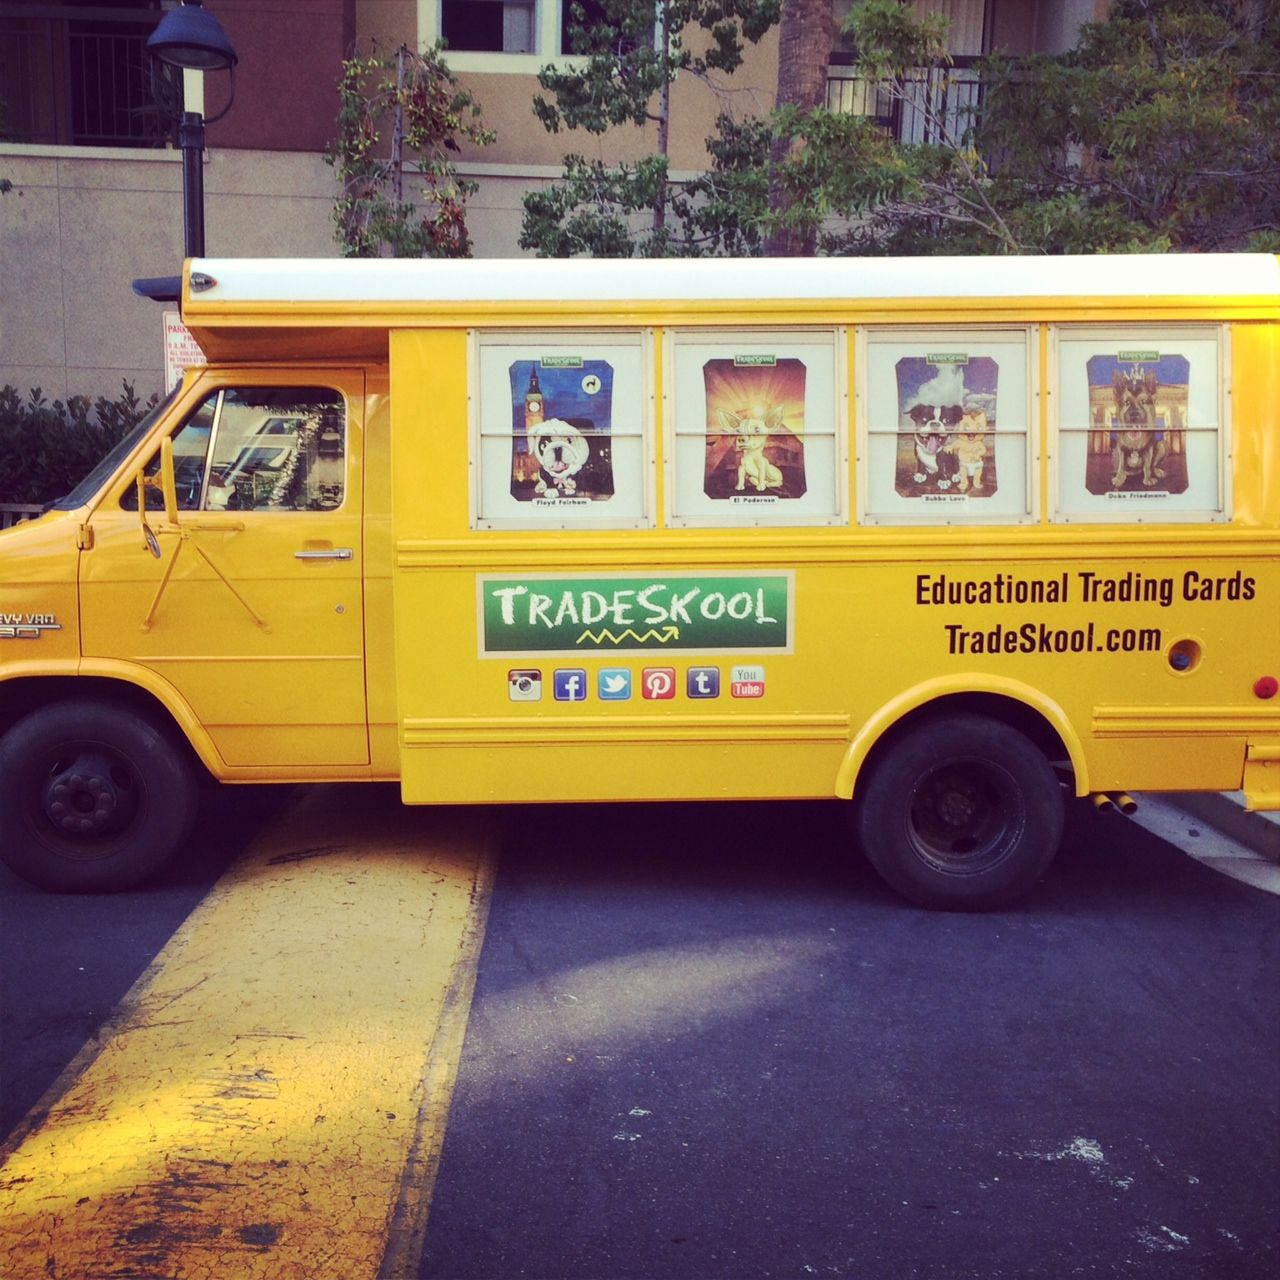 Check out our new wheels! The TradeSkool bus is out and about in San Diego promoting our official TradeSkool Launch Party!